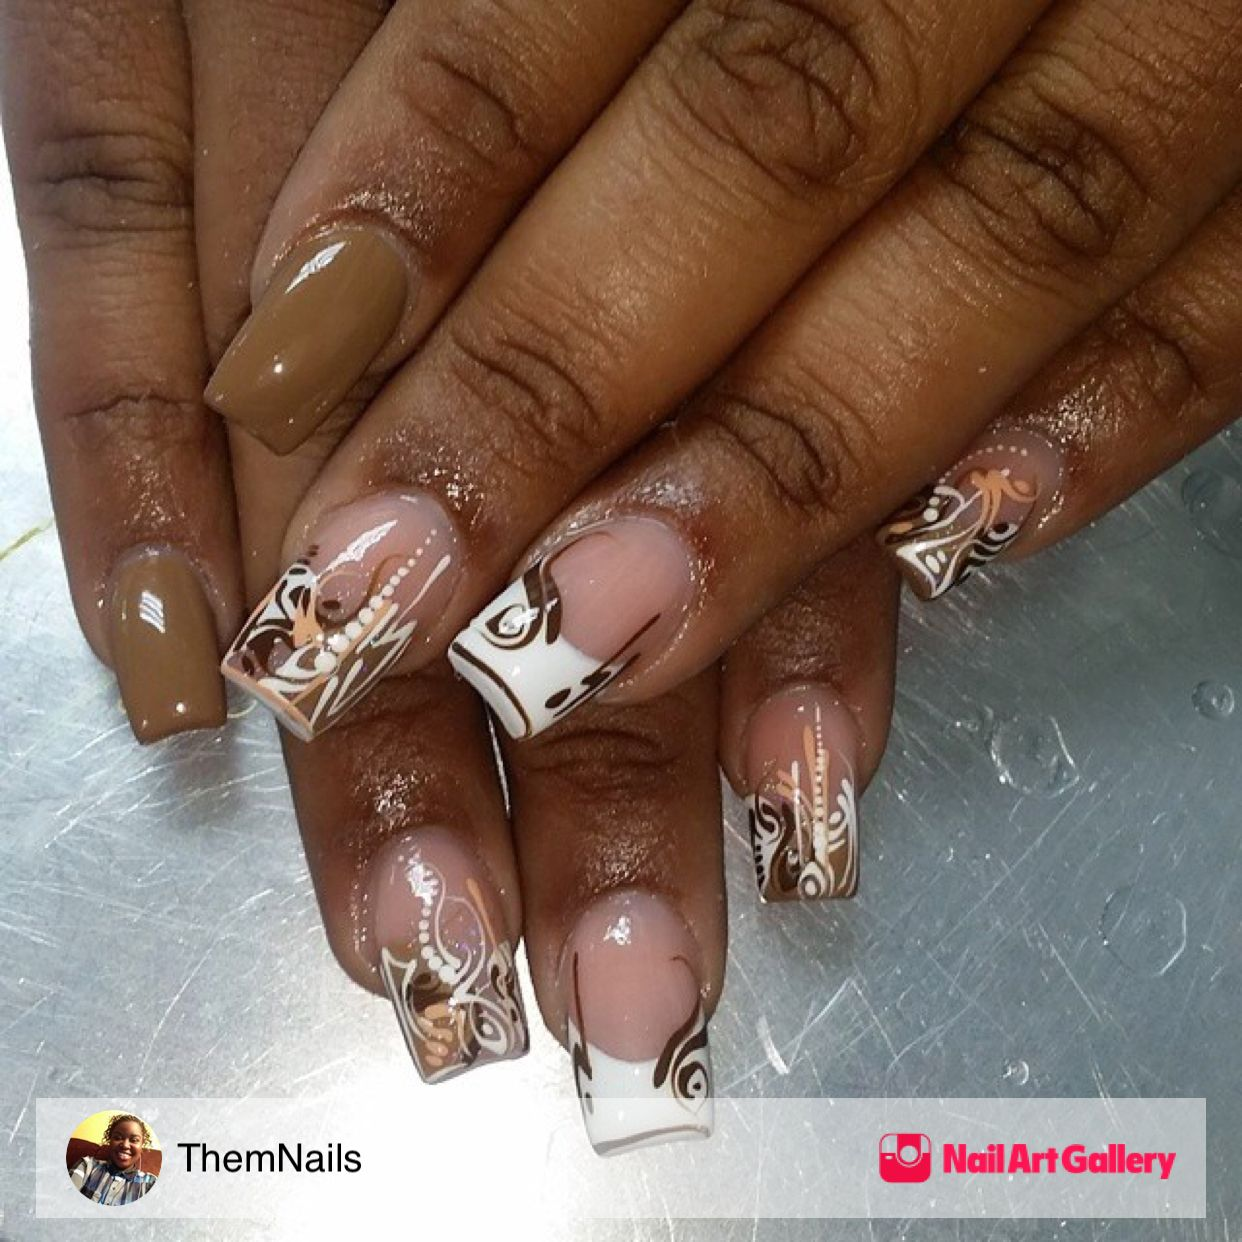 Nail Inspiration by ThemNails via Nail Art Gallery